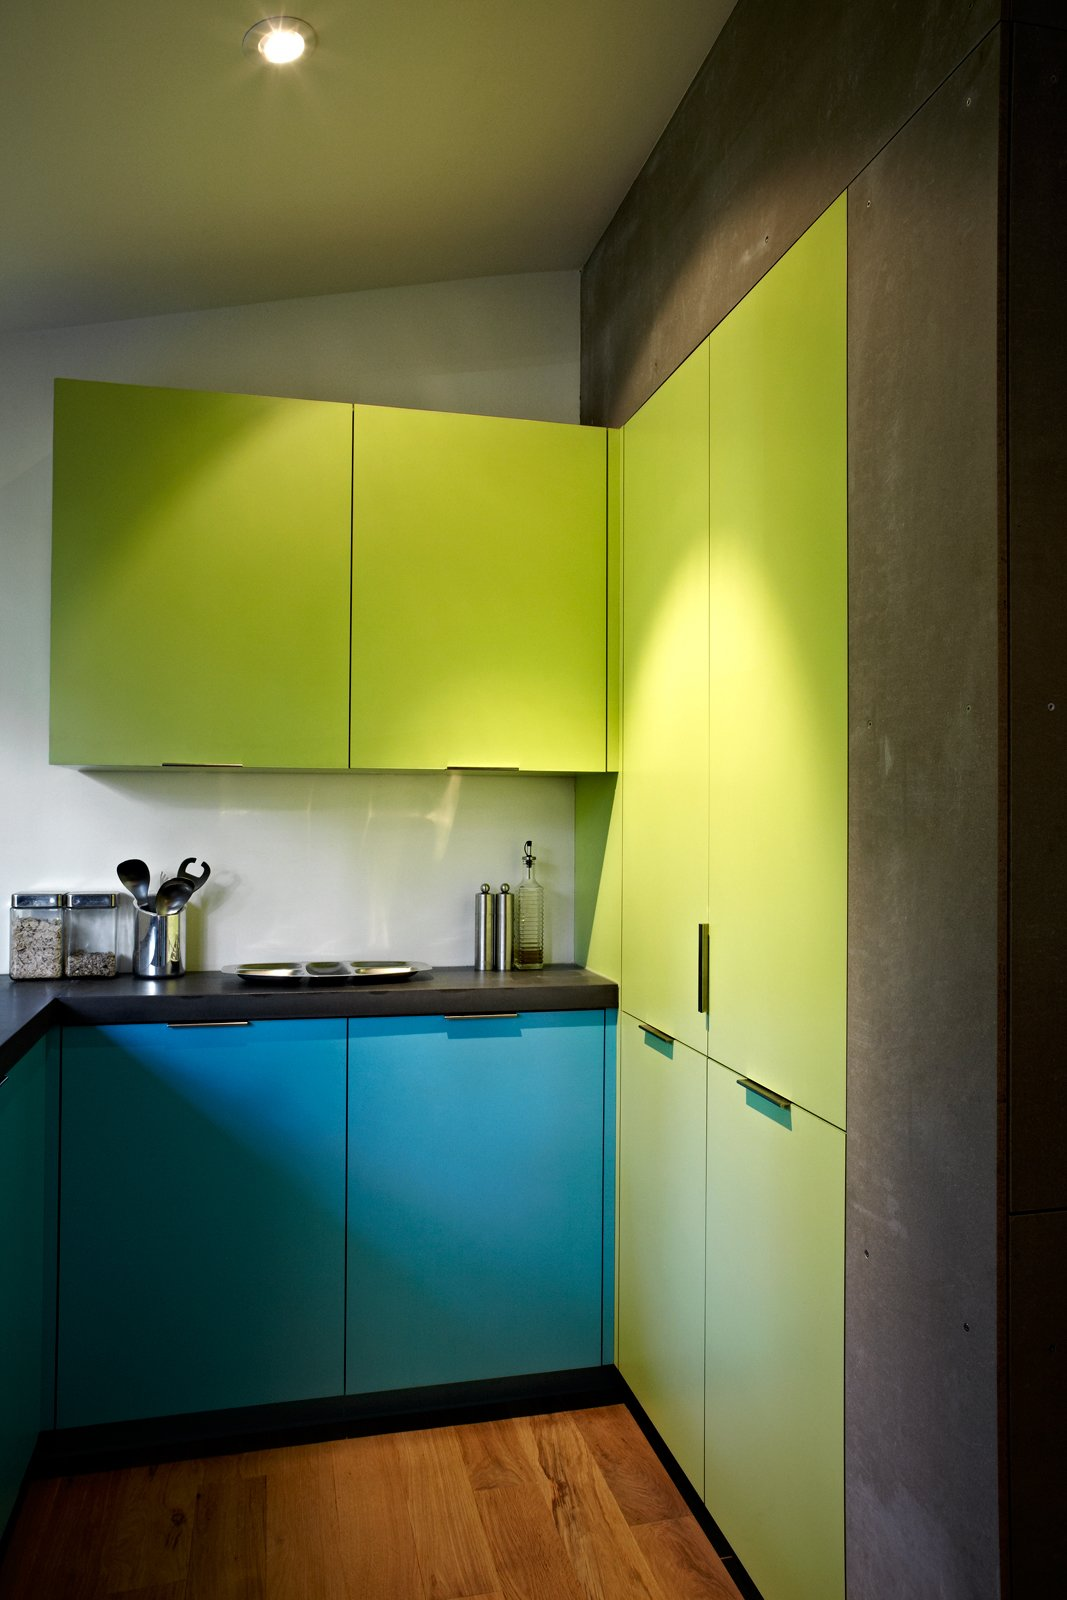 The eye-popping laminated cabinets are from Abet Laminati in Bloomberg's favorite colors. The gray walls are made from Viroc, a substance typically used to underlay other building materials. Photo by: Greg Powers  Photo 3 of 6 in Modern Kitchen Renovation with Mid-Century Roots